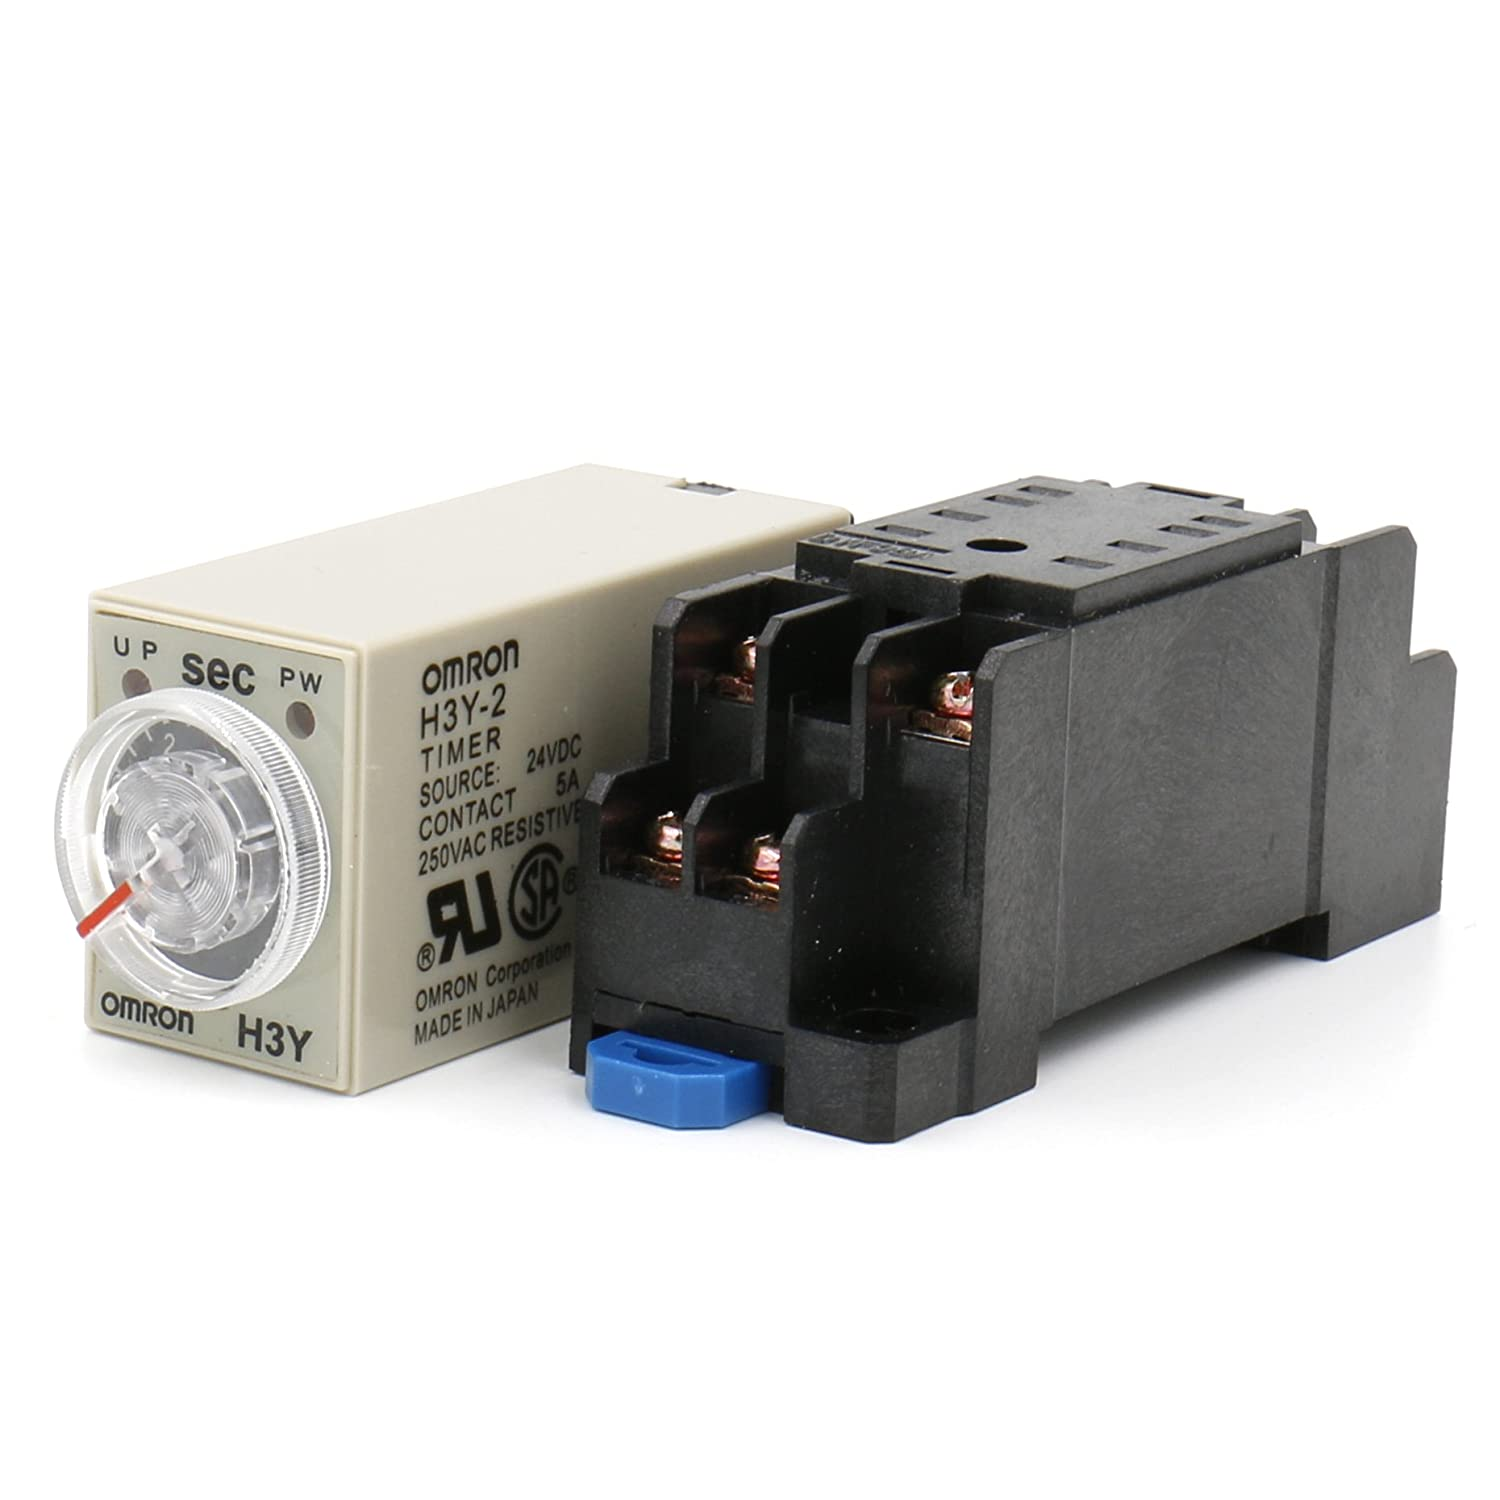 Heschen Timer Delay Relay H3Y-2 24VDC 0-60 Seconds 250VAC 5A 8Pin terminal DPDT with DYF08 35mm DIN Rail Socket Base Heschen Electric Co.Ltd H3Y-2-24V-60S